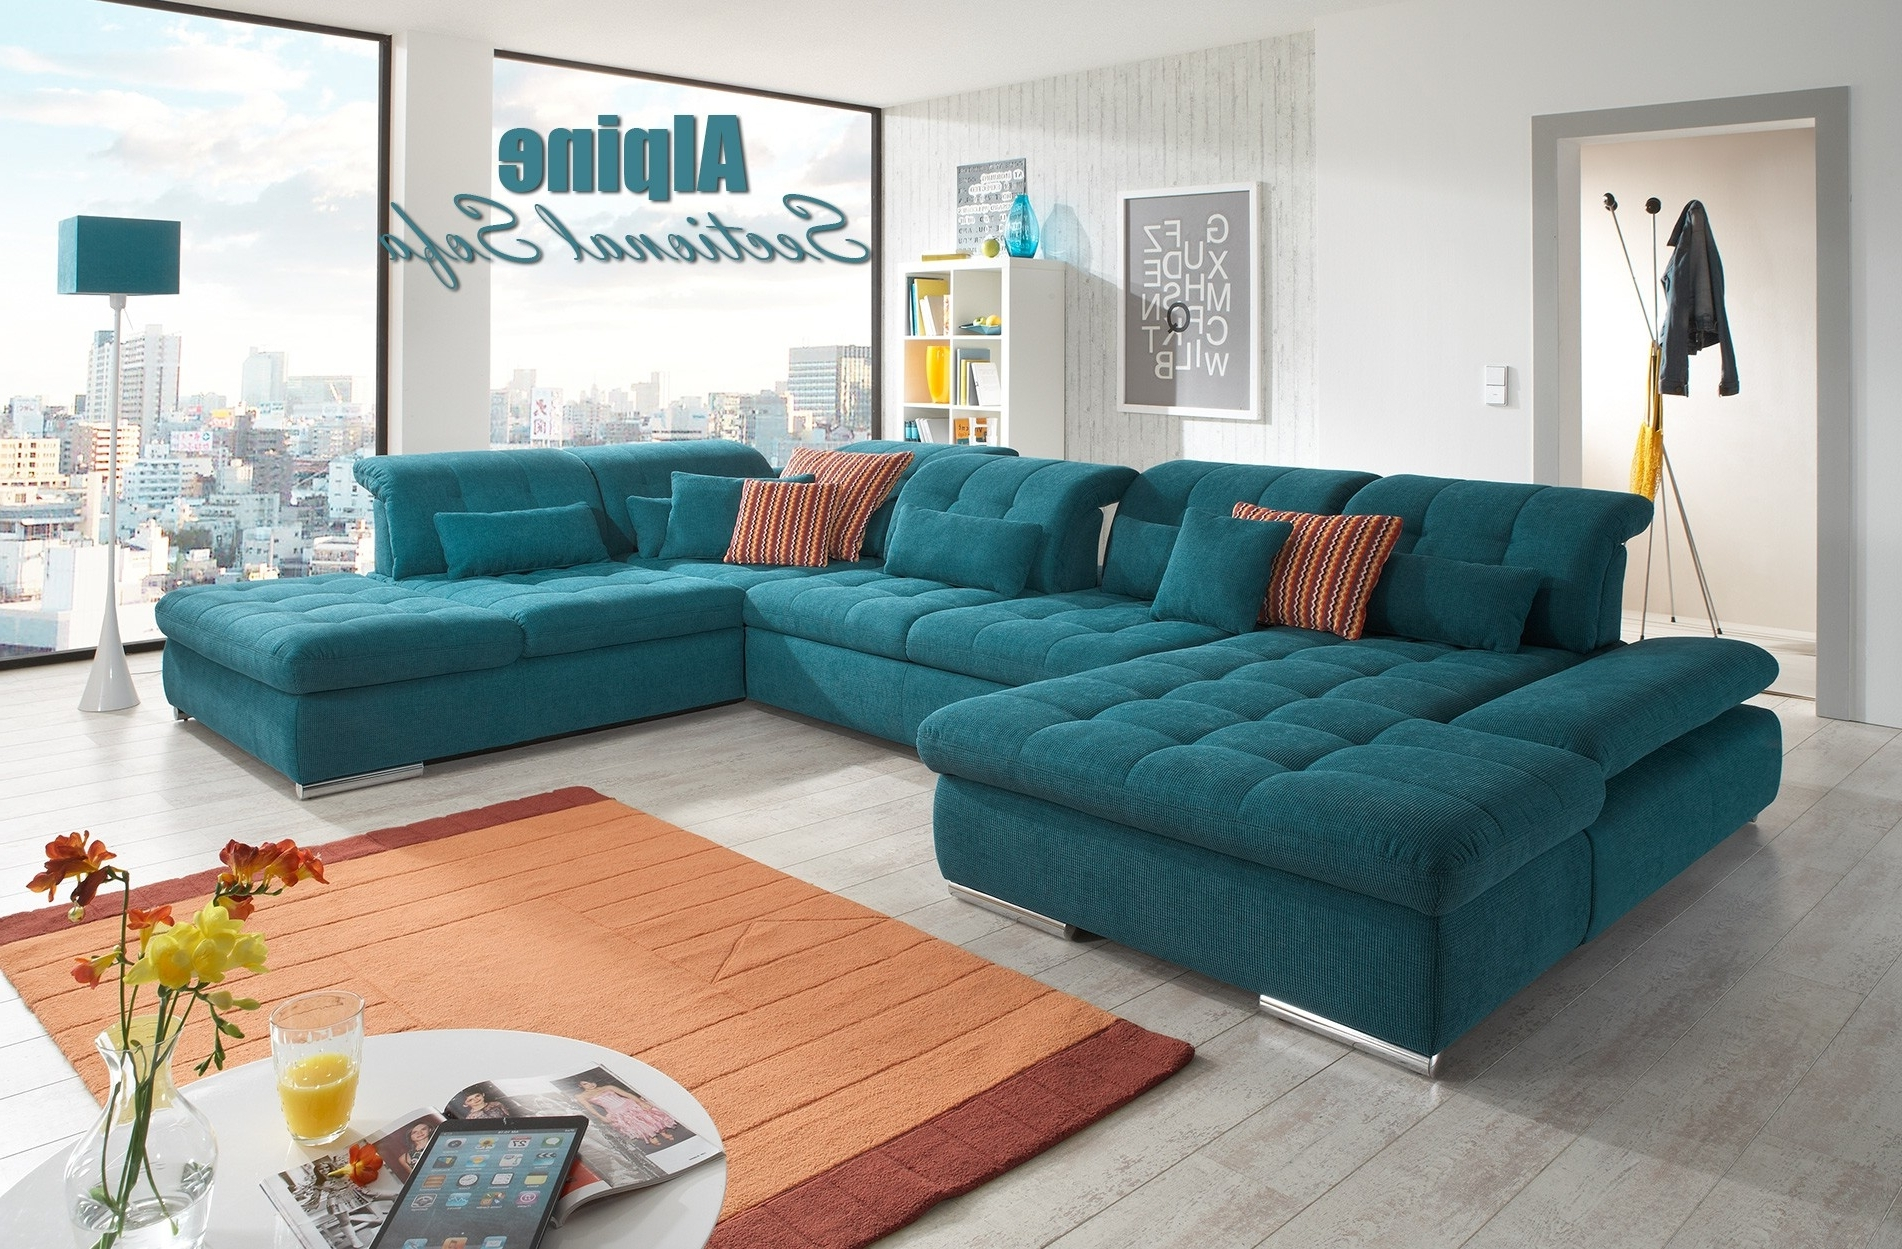 Trinidad And Tobago Sectional Sofas Throughout Most Recently Released Alpine Sectional Sofa In Green Fabric (View 11 of 15)